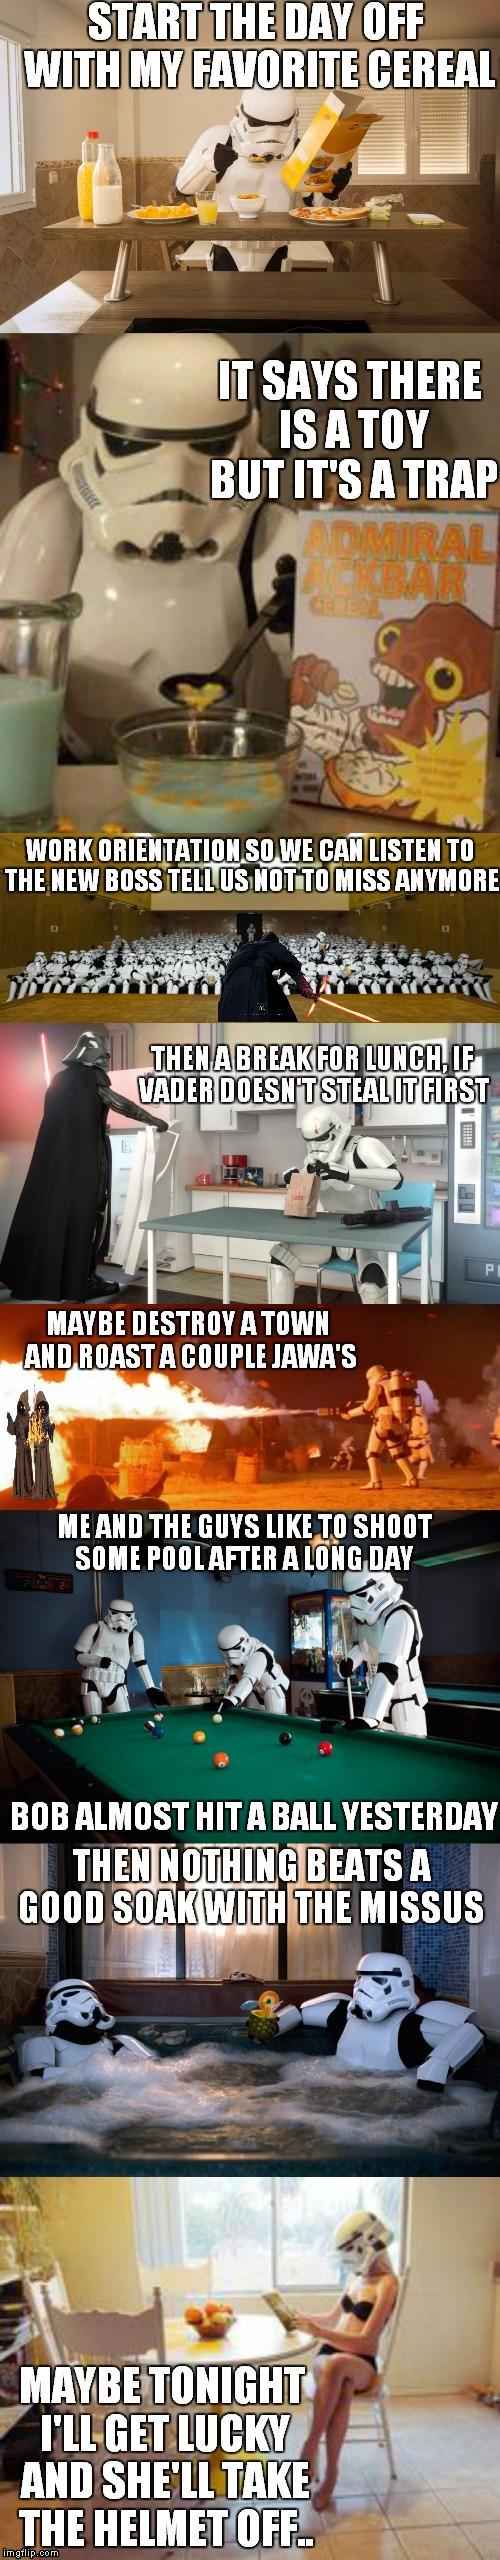 A day in the life of a trooper... | BOB ALMOST HIT A BALL YESTERDAY | image tagged in stormtrooper,a day in the life of,funny,star wars | made w/ Imgflip meme maker